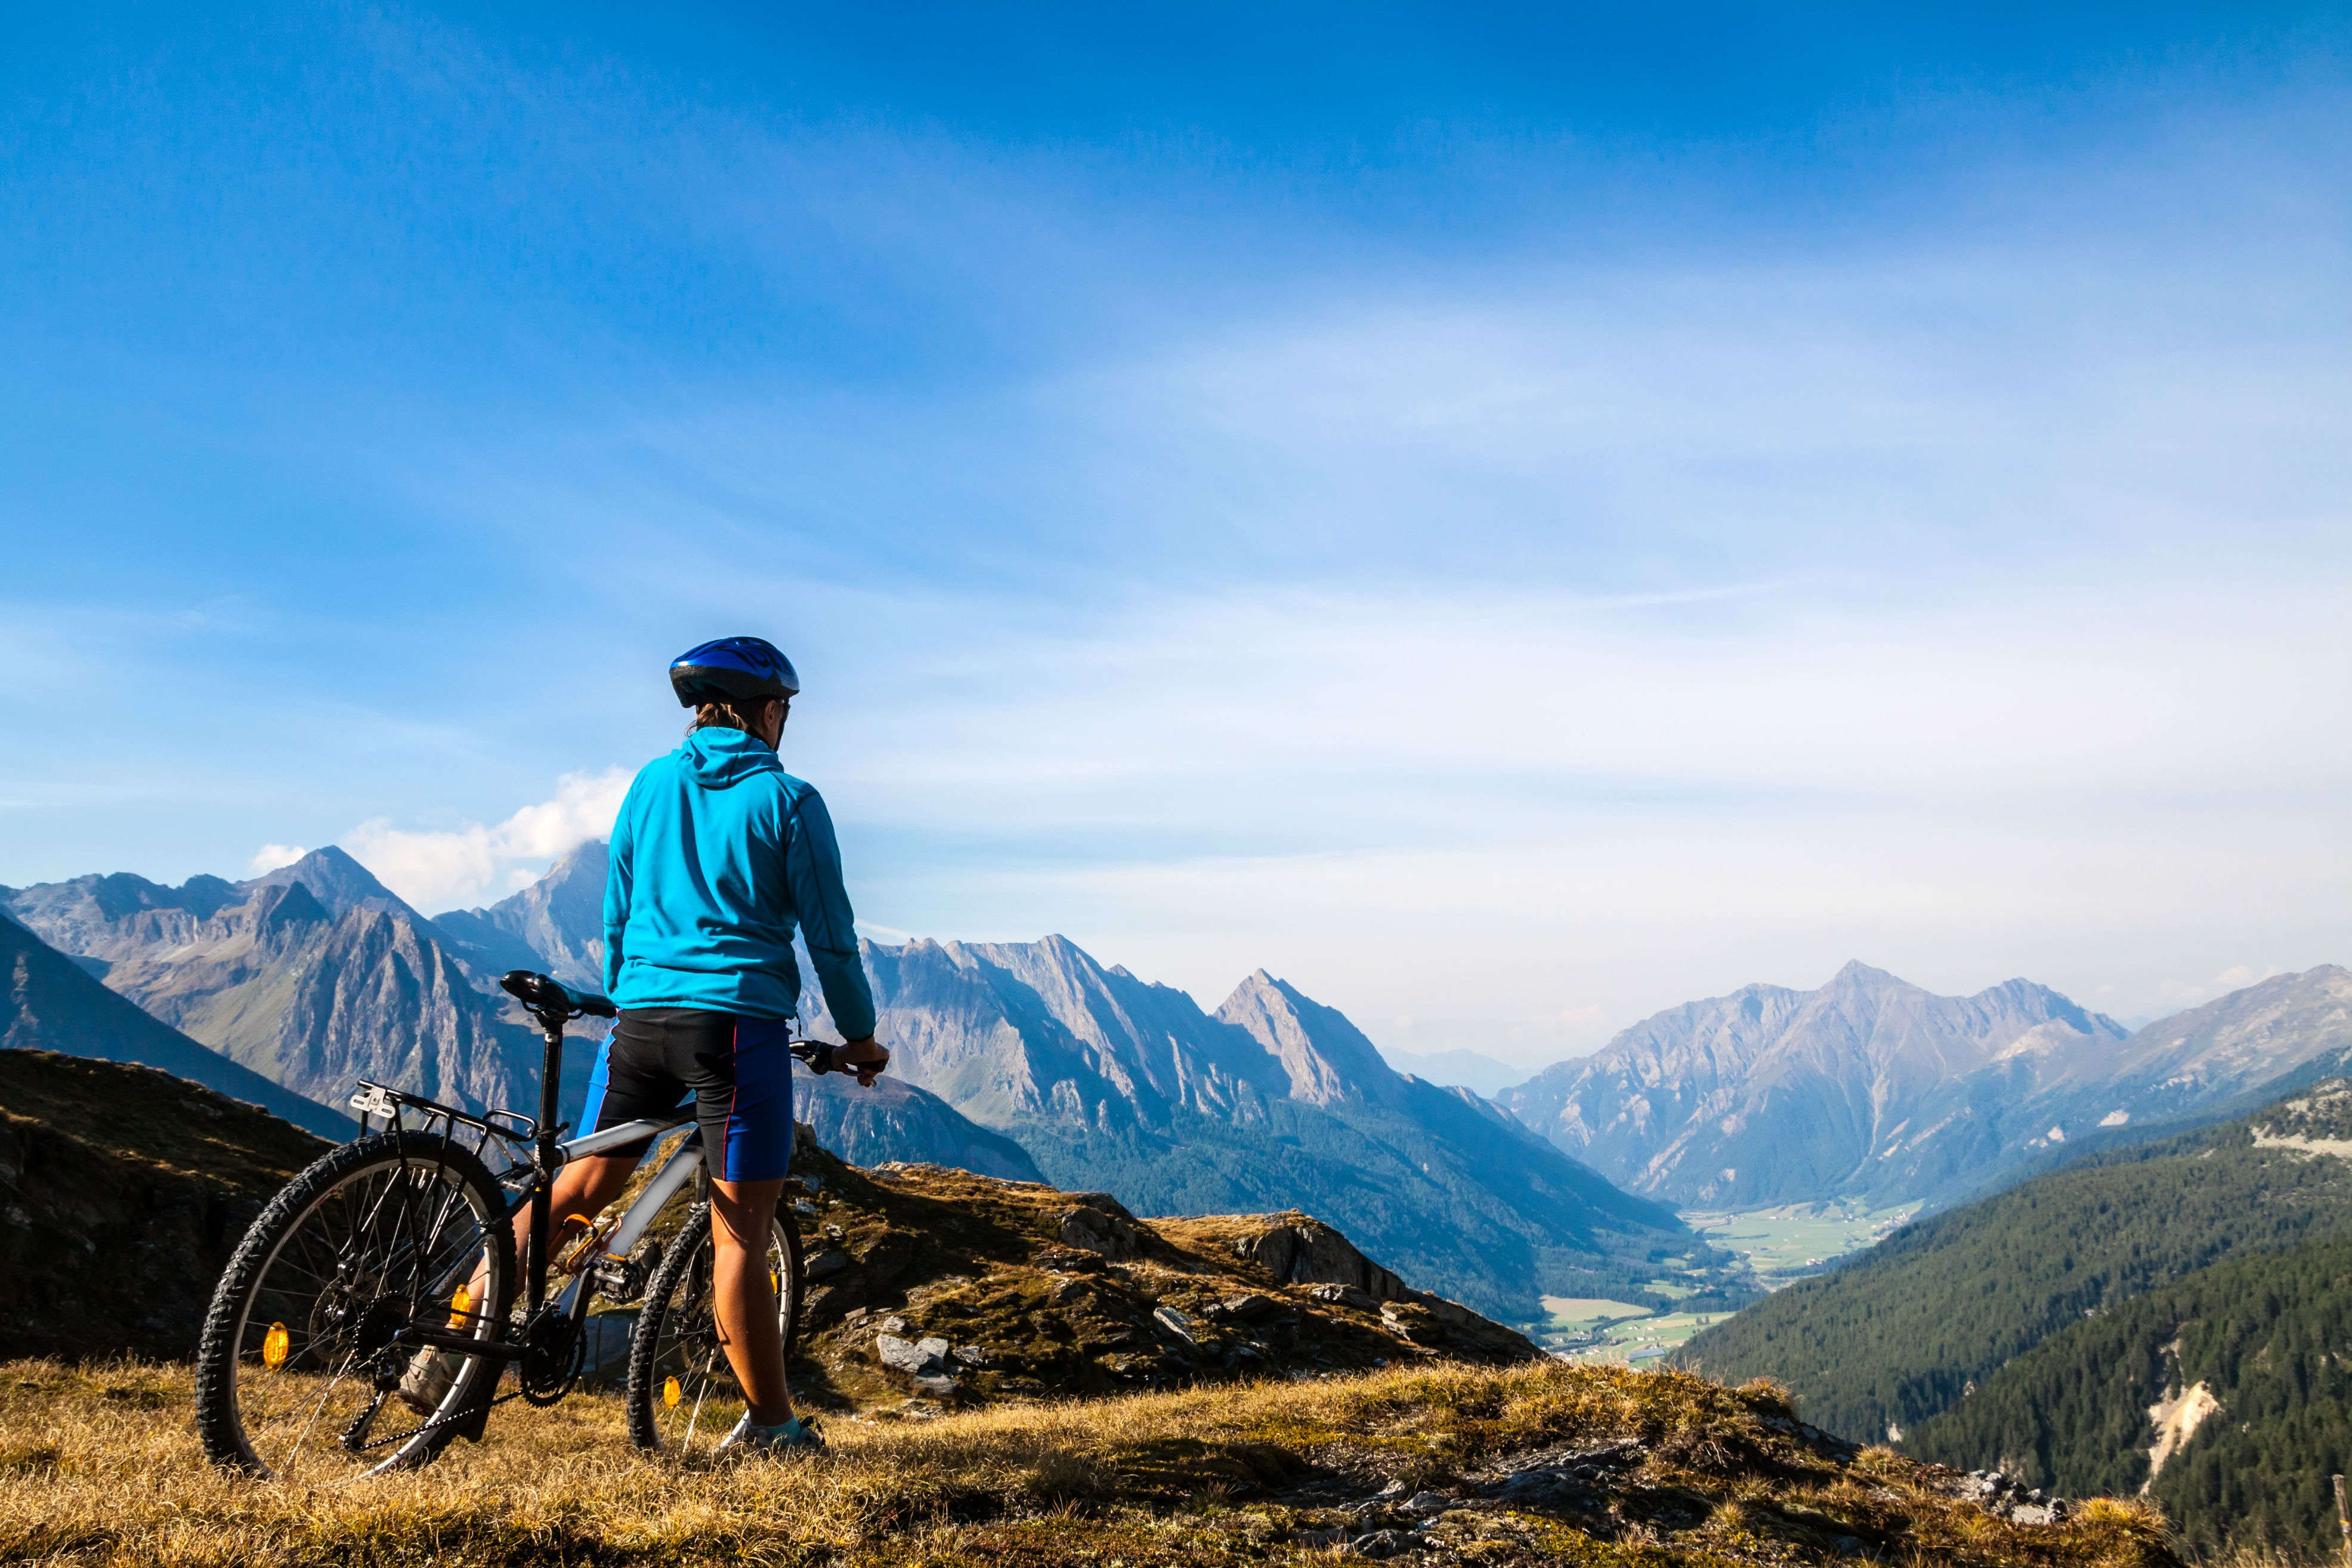 Sikkim to host an epic mountain biking race this June